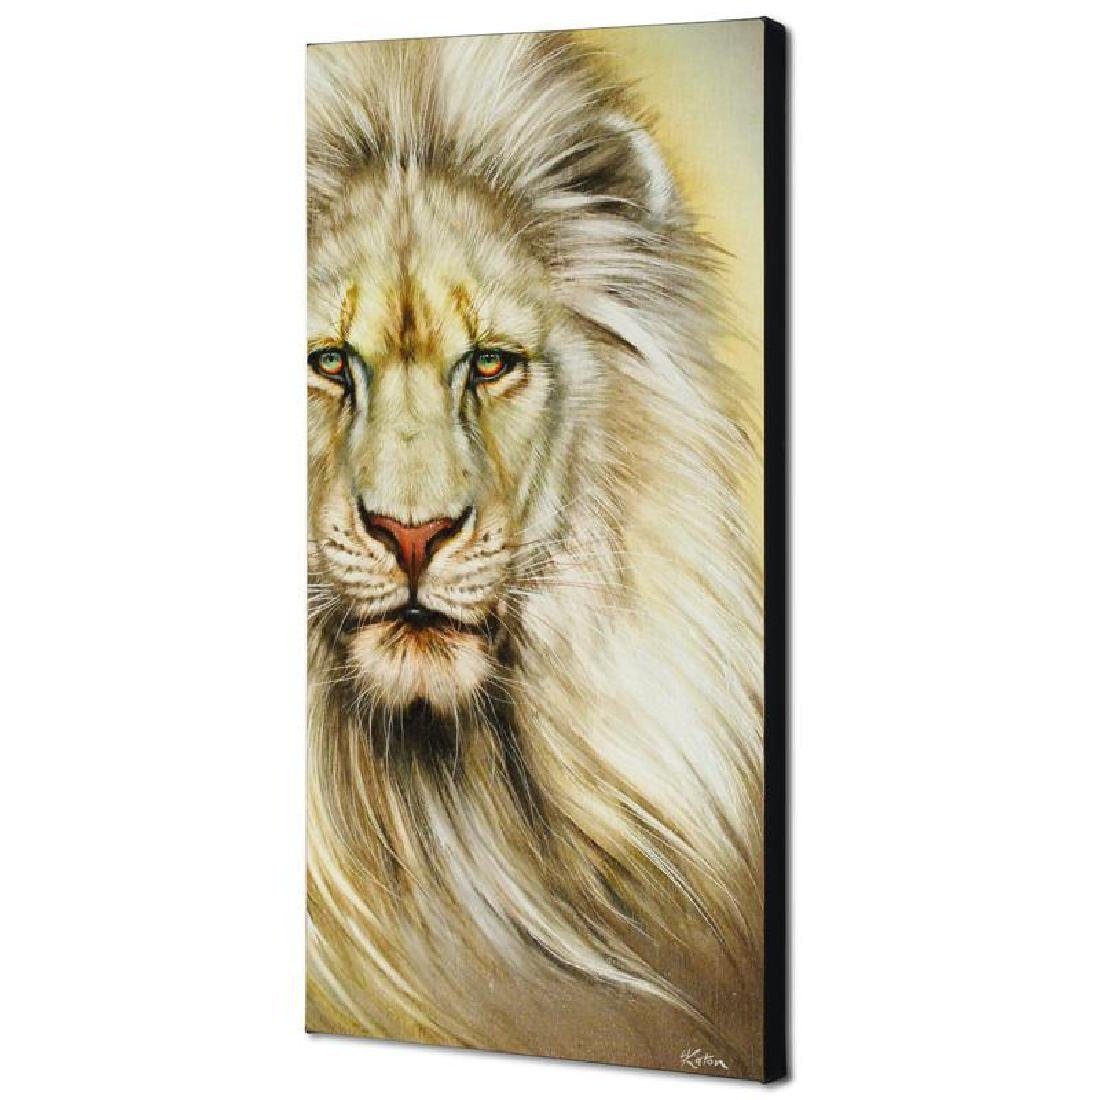 """White Lion"" Limited Edition Giclee on Canvas by Martin"